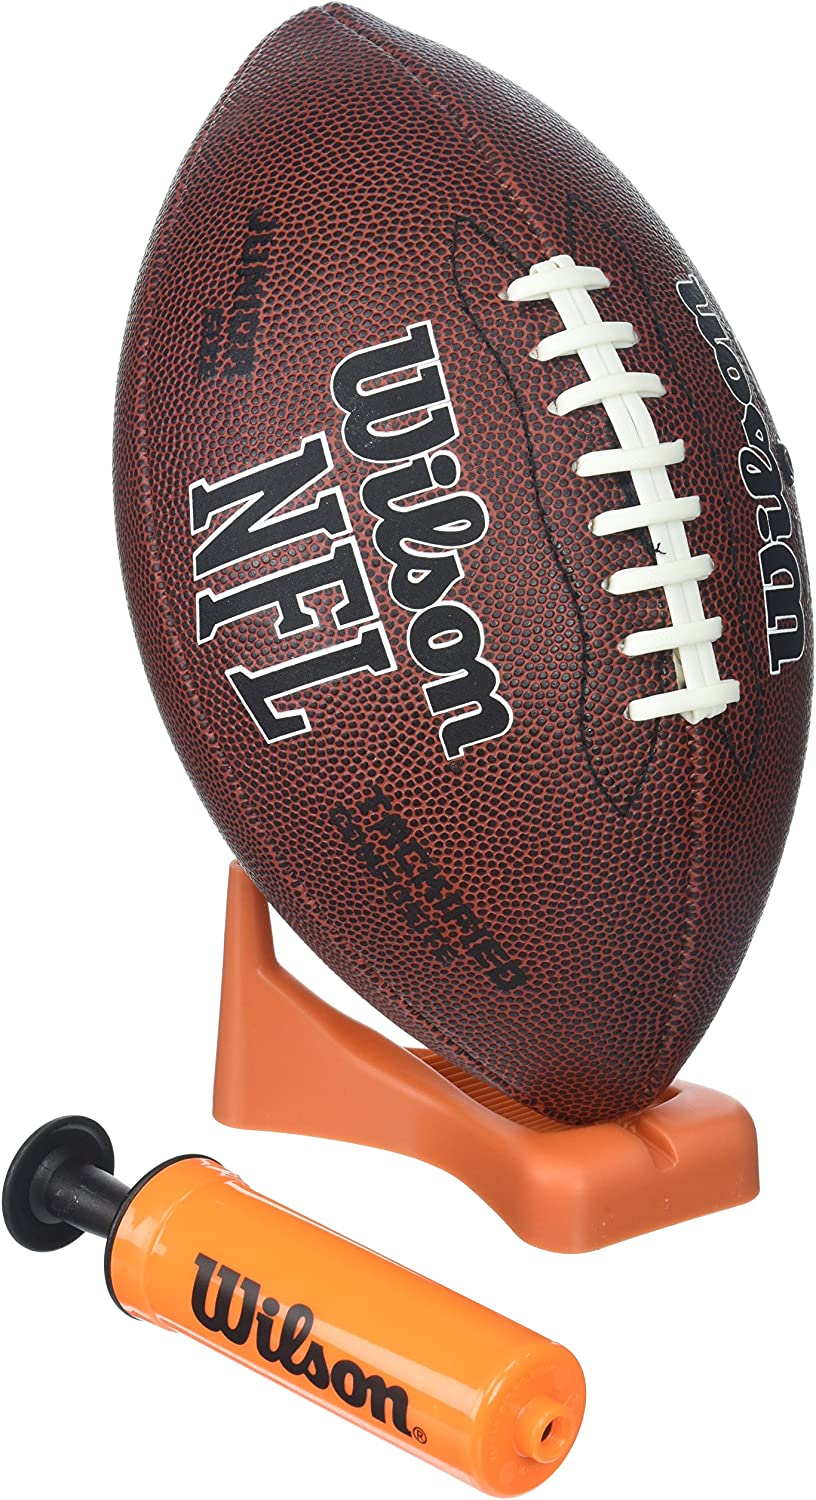 Wilson NFL Enforcer Football with Pump and Tee, tan : Official Footballs : Sports & Outdoors